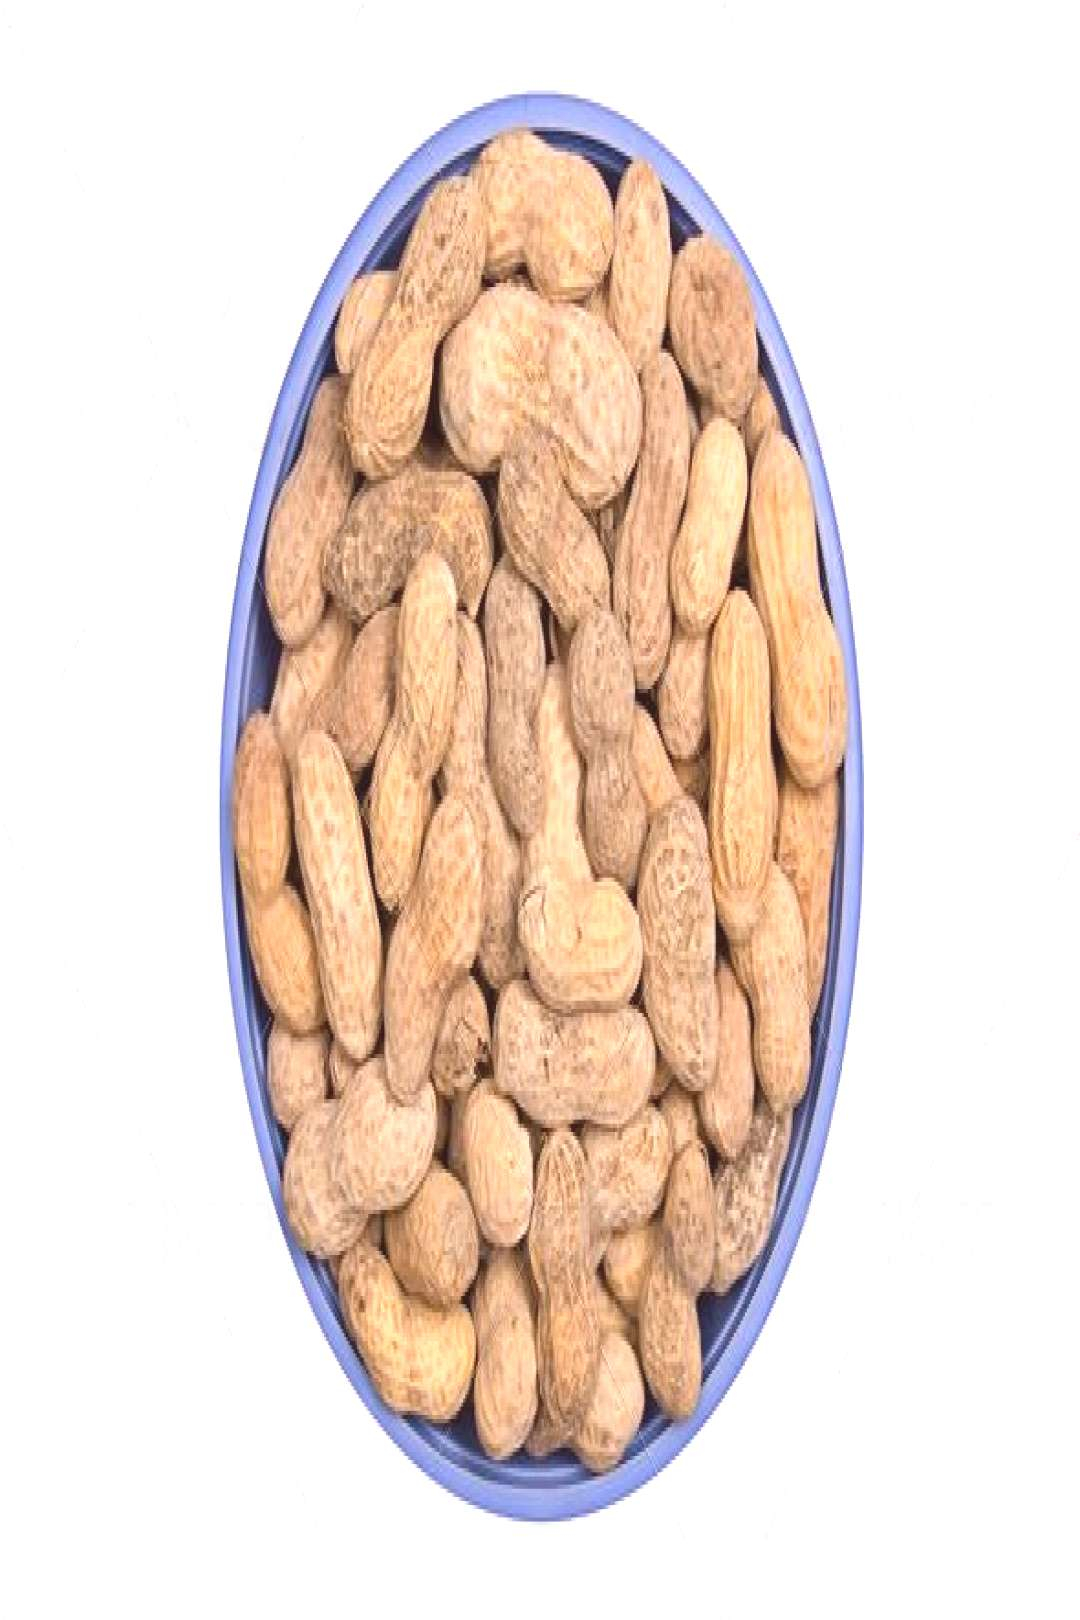 Bowl of peanuts by joebelanger. A bowl of peanuts isolated on a white background